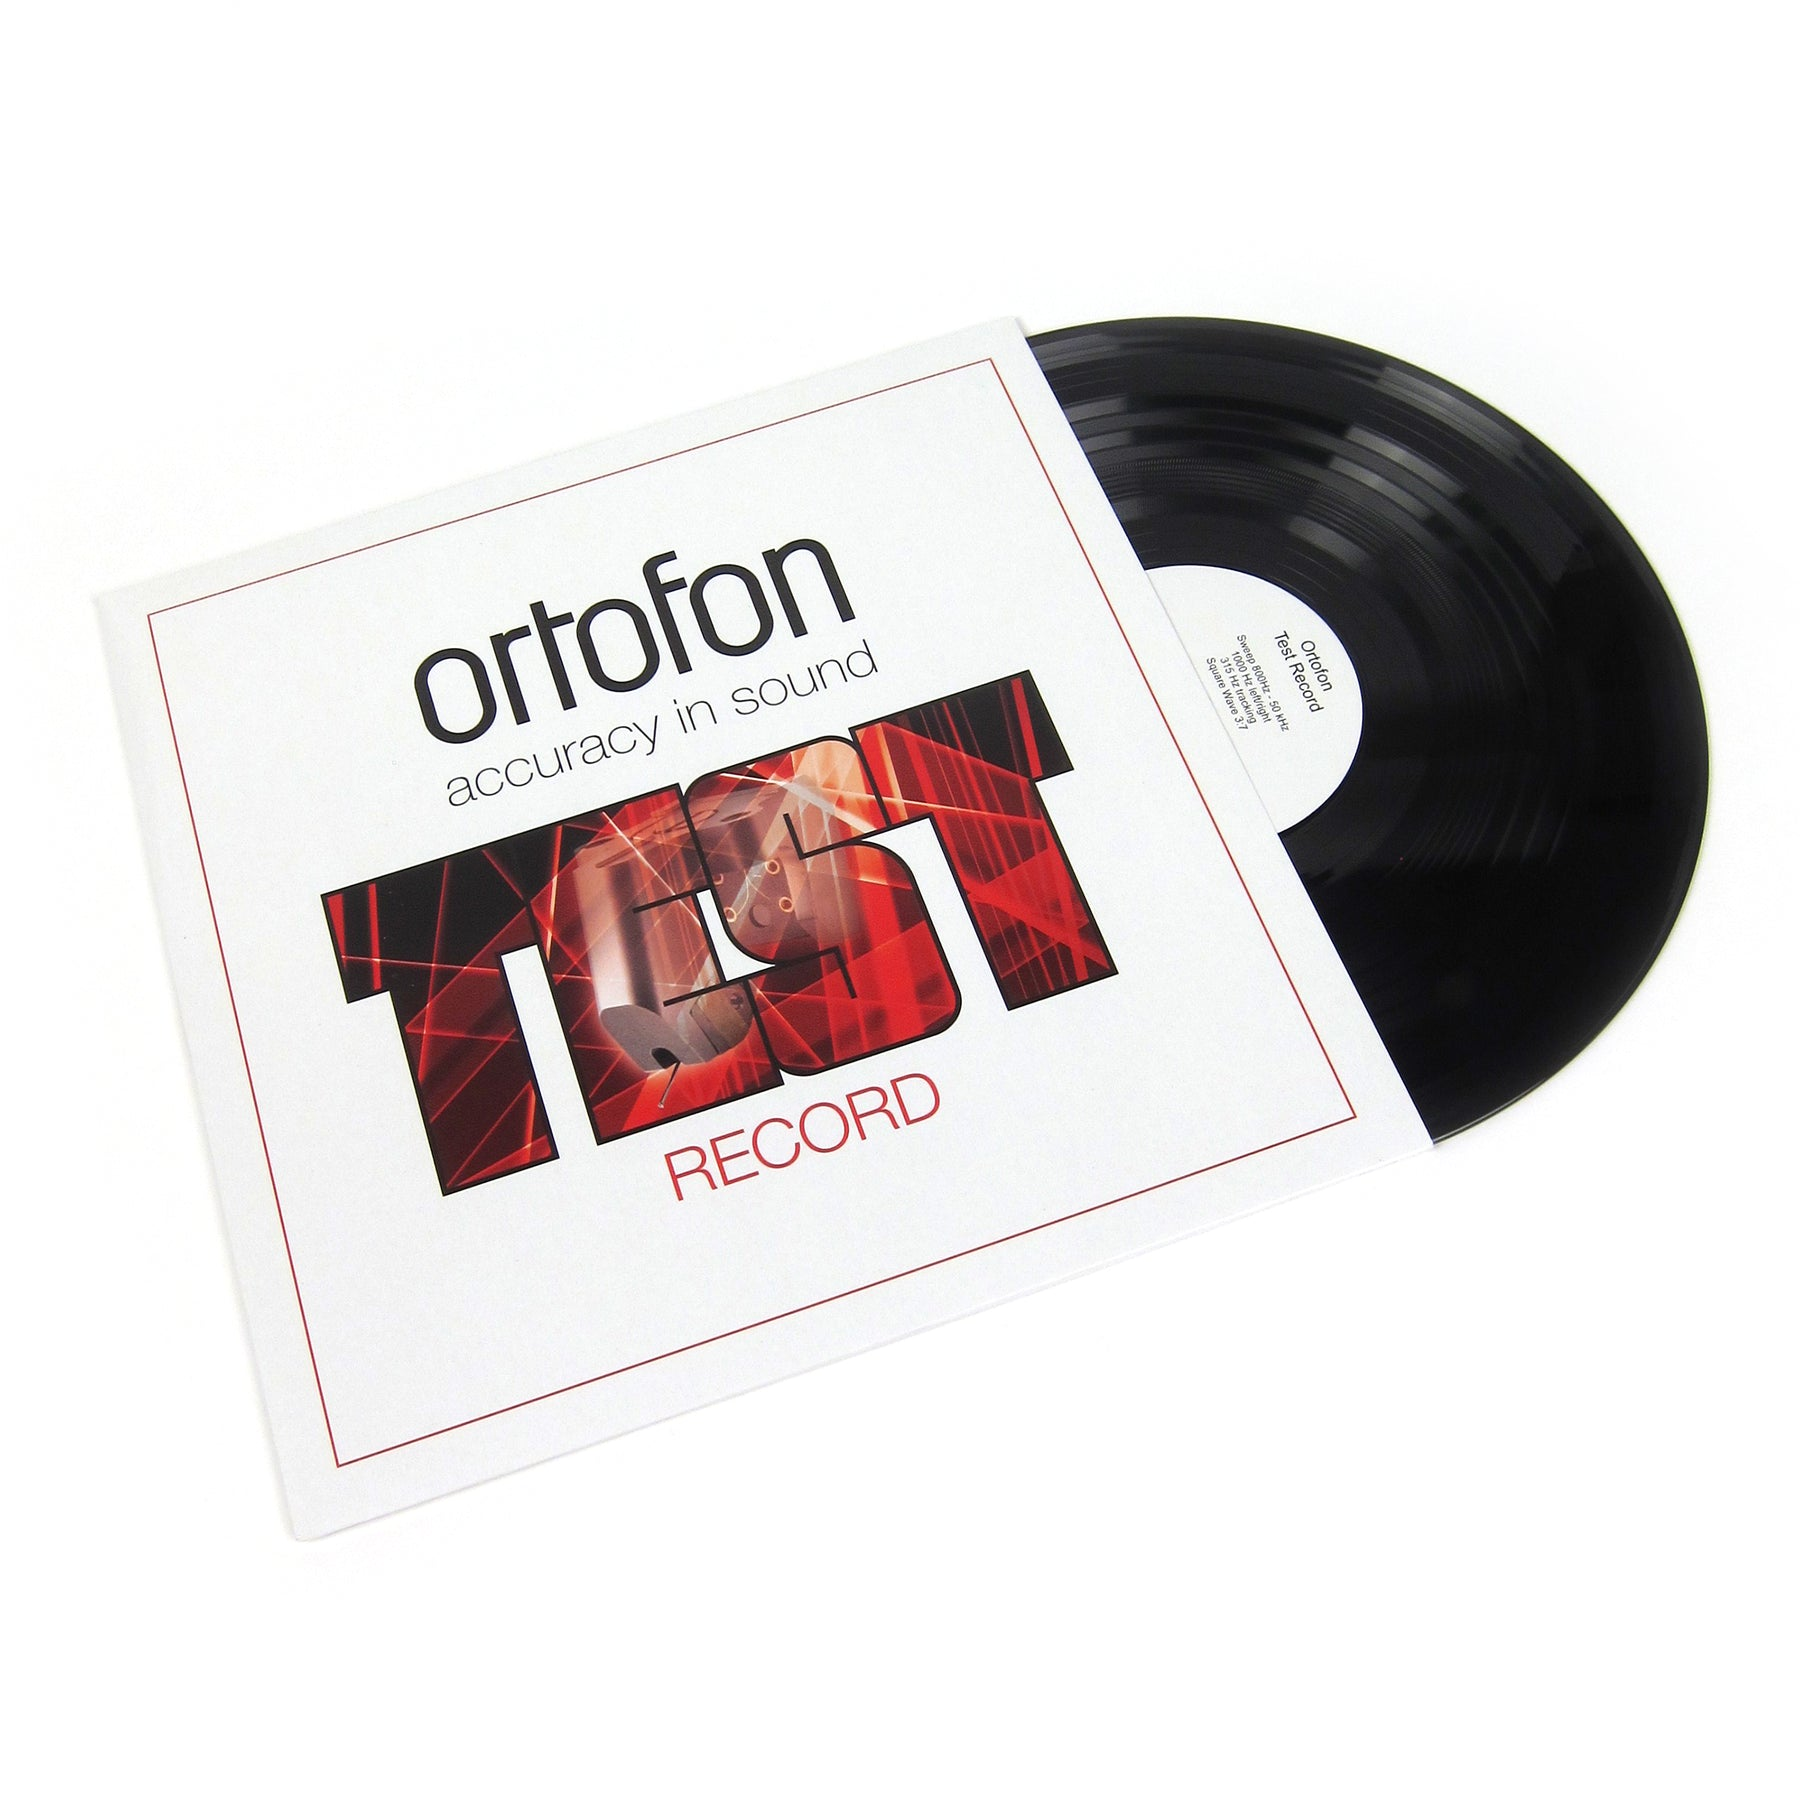 ortofon: test record vinyl lp – turntablelab